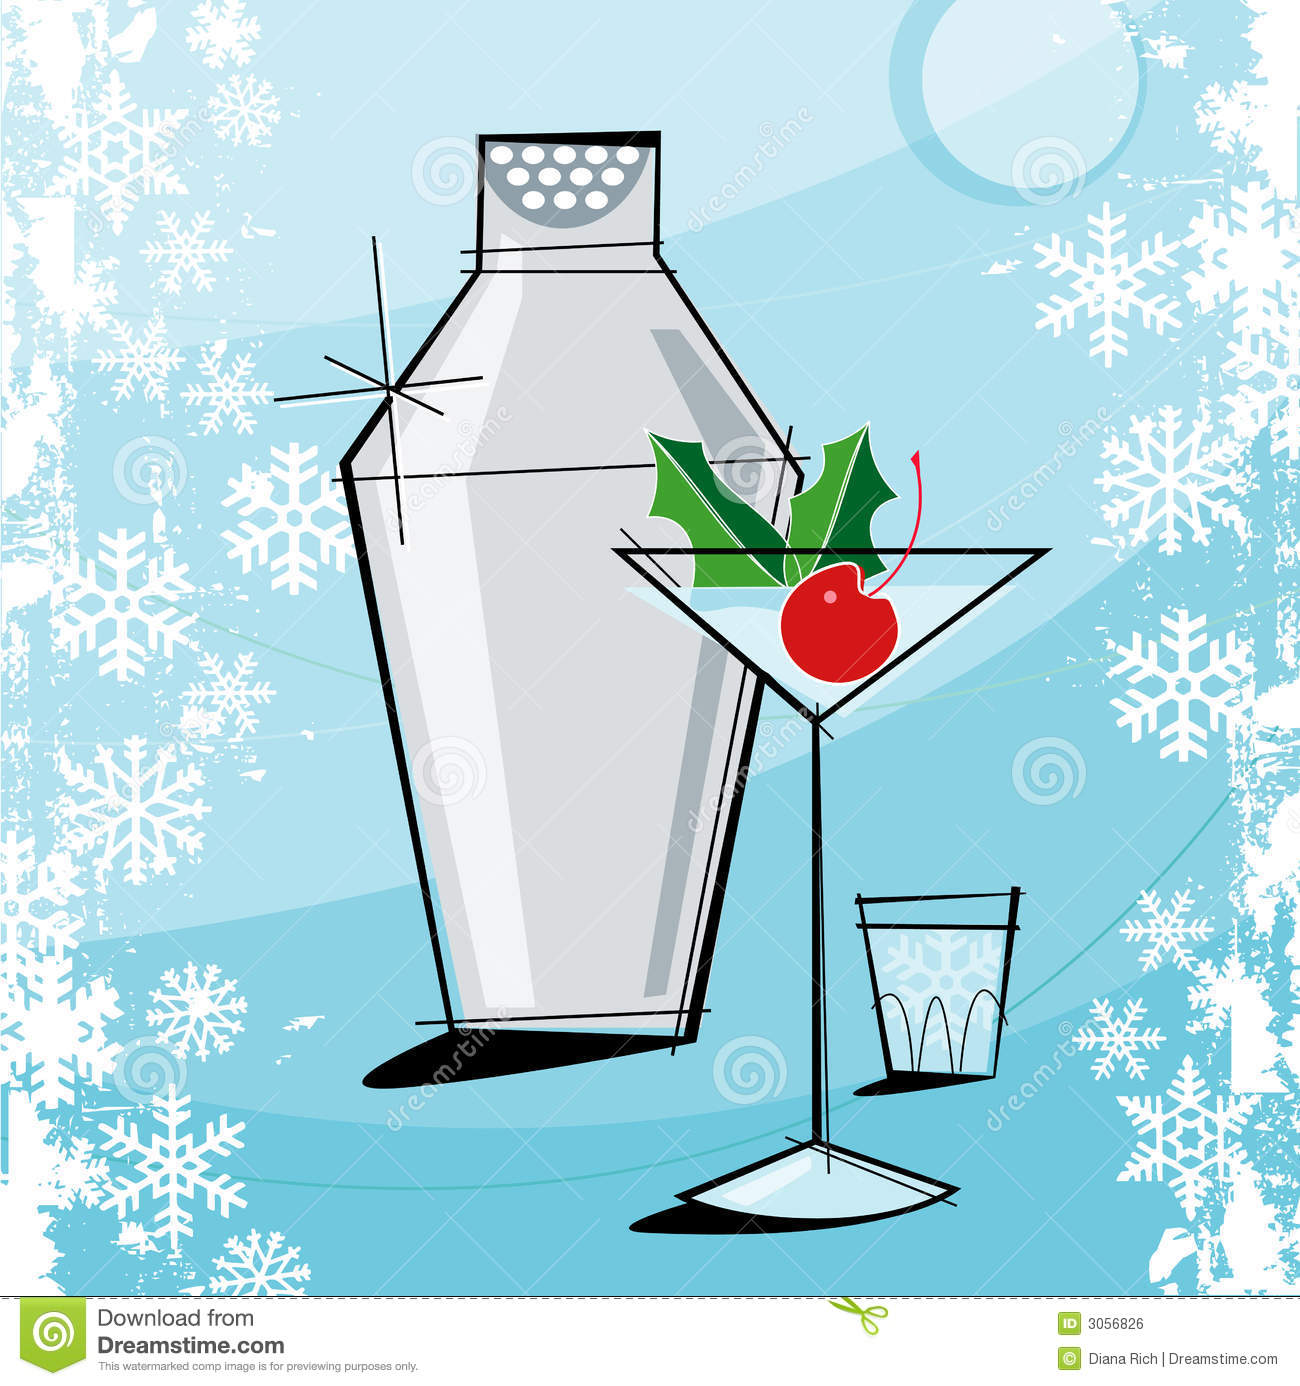 Retro-style Christmas Martini Stock Vector - Illustration of